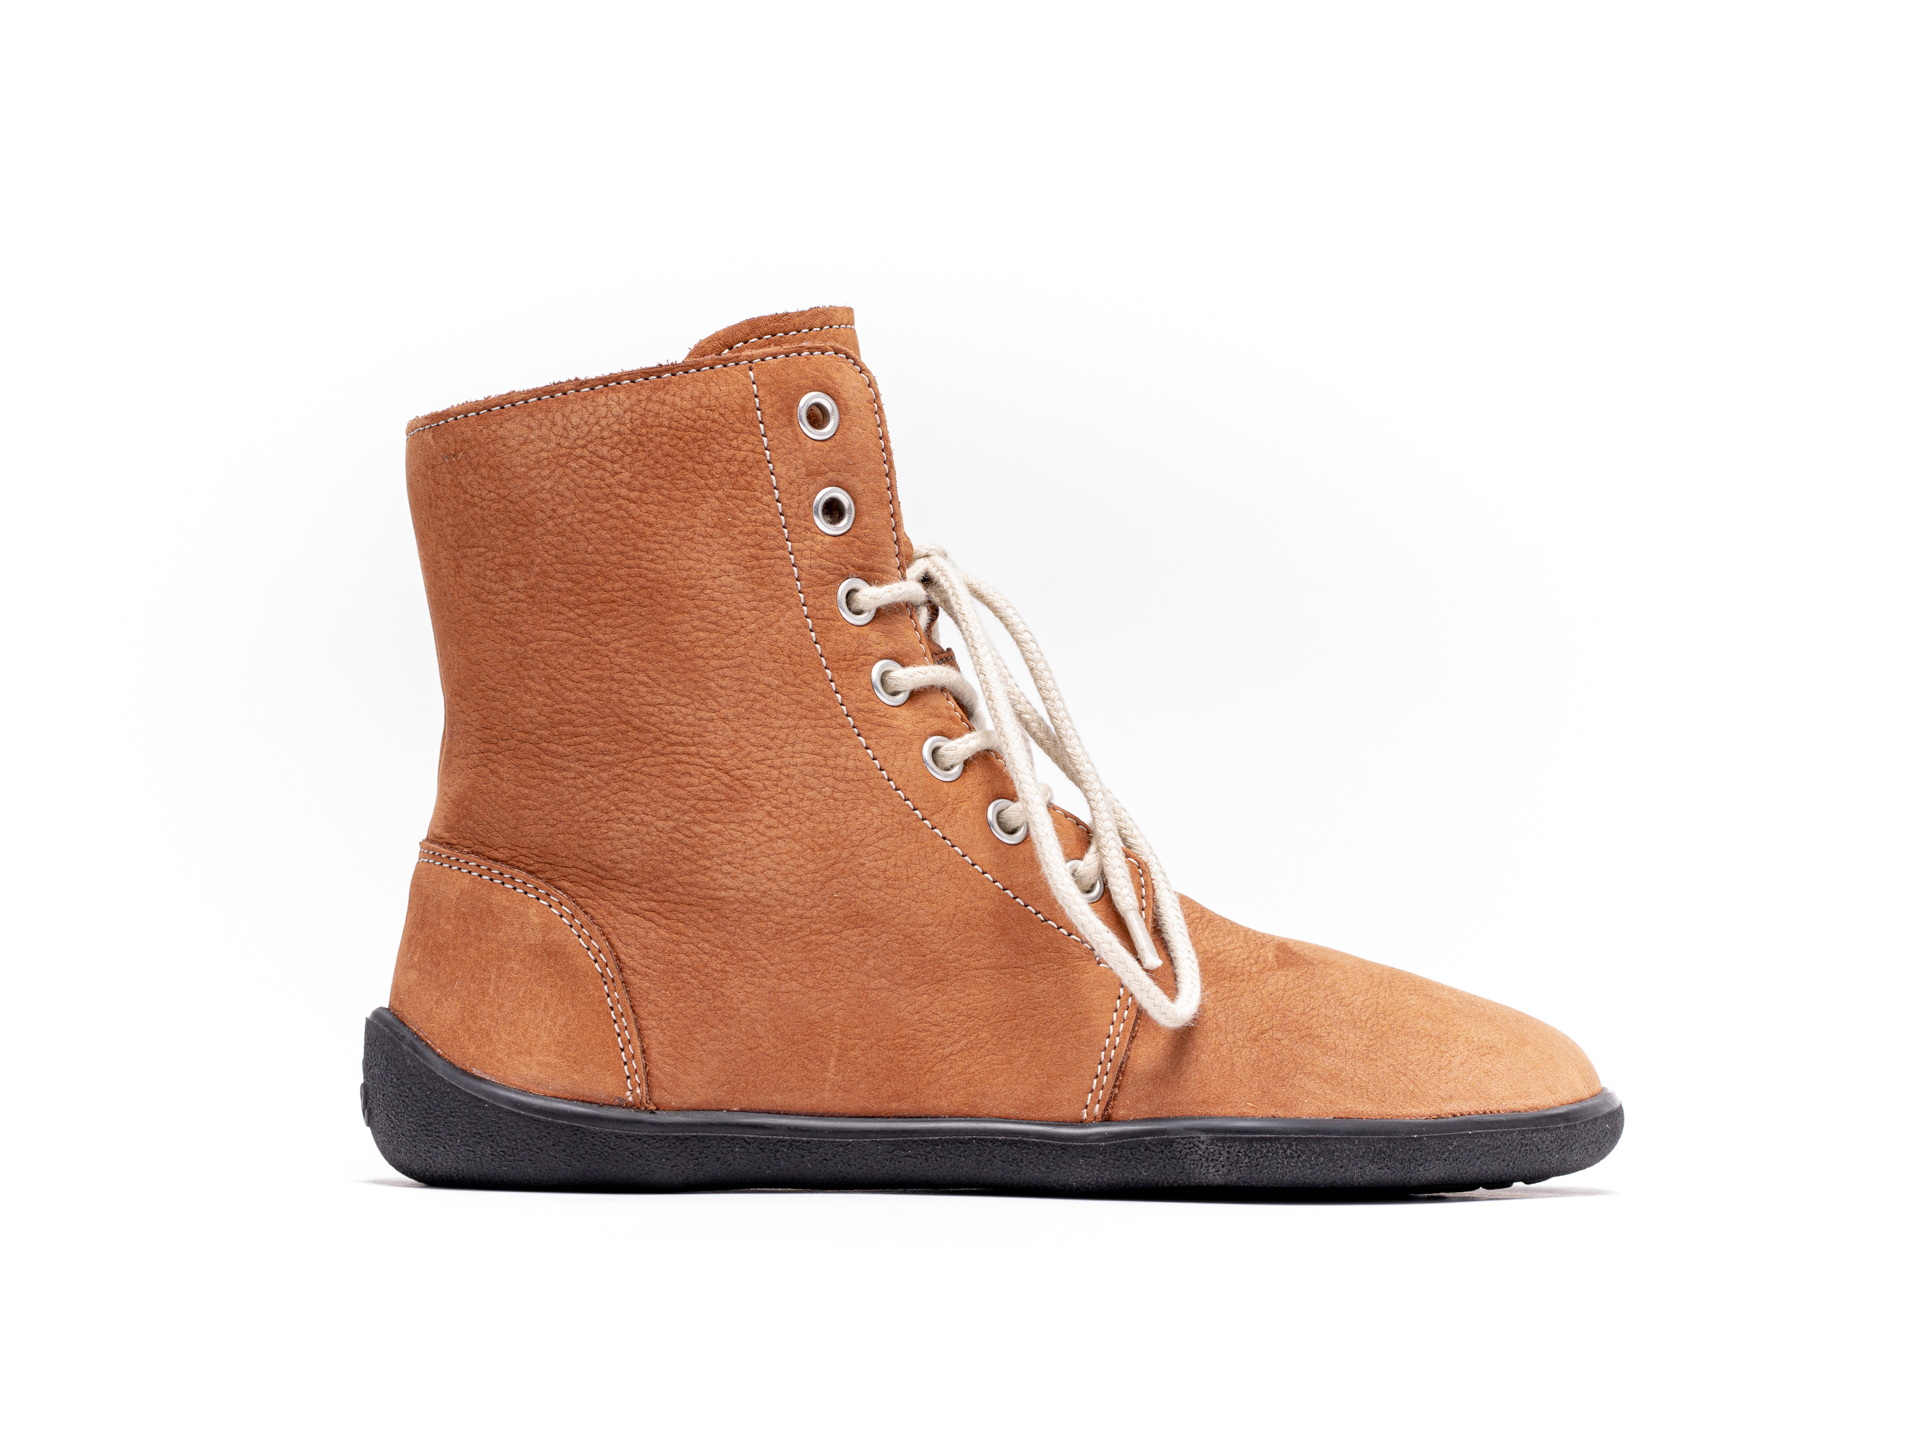 Barfussschuhe – Be Lenka Winter – Cognac 44